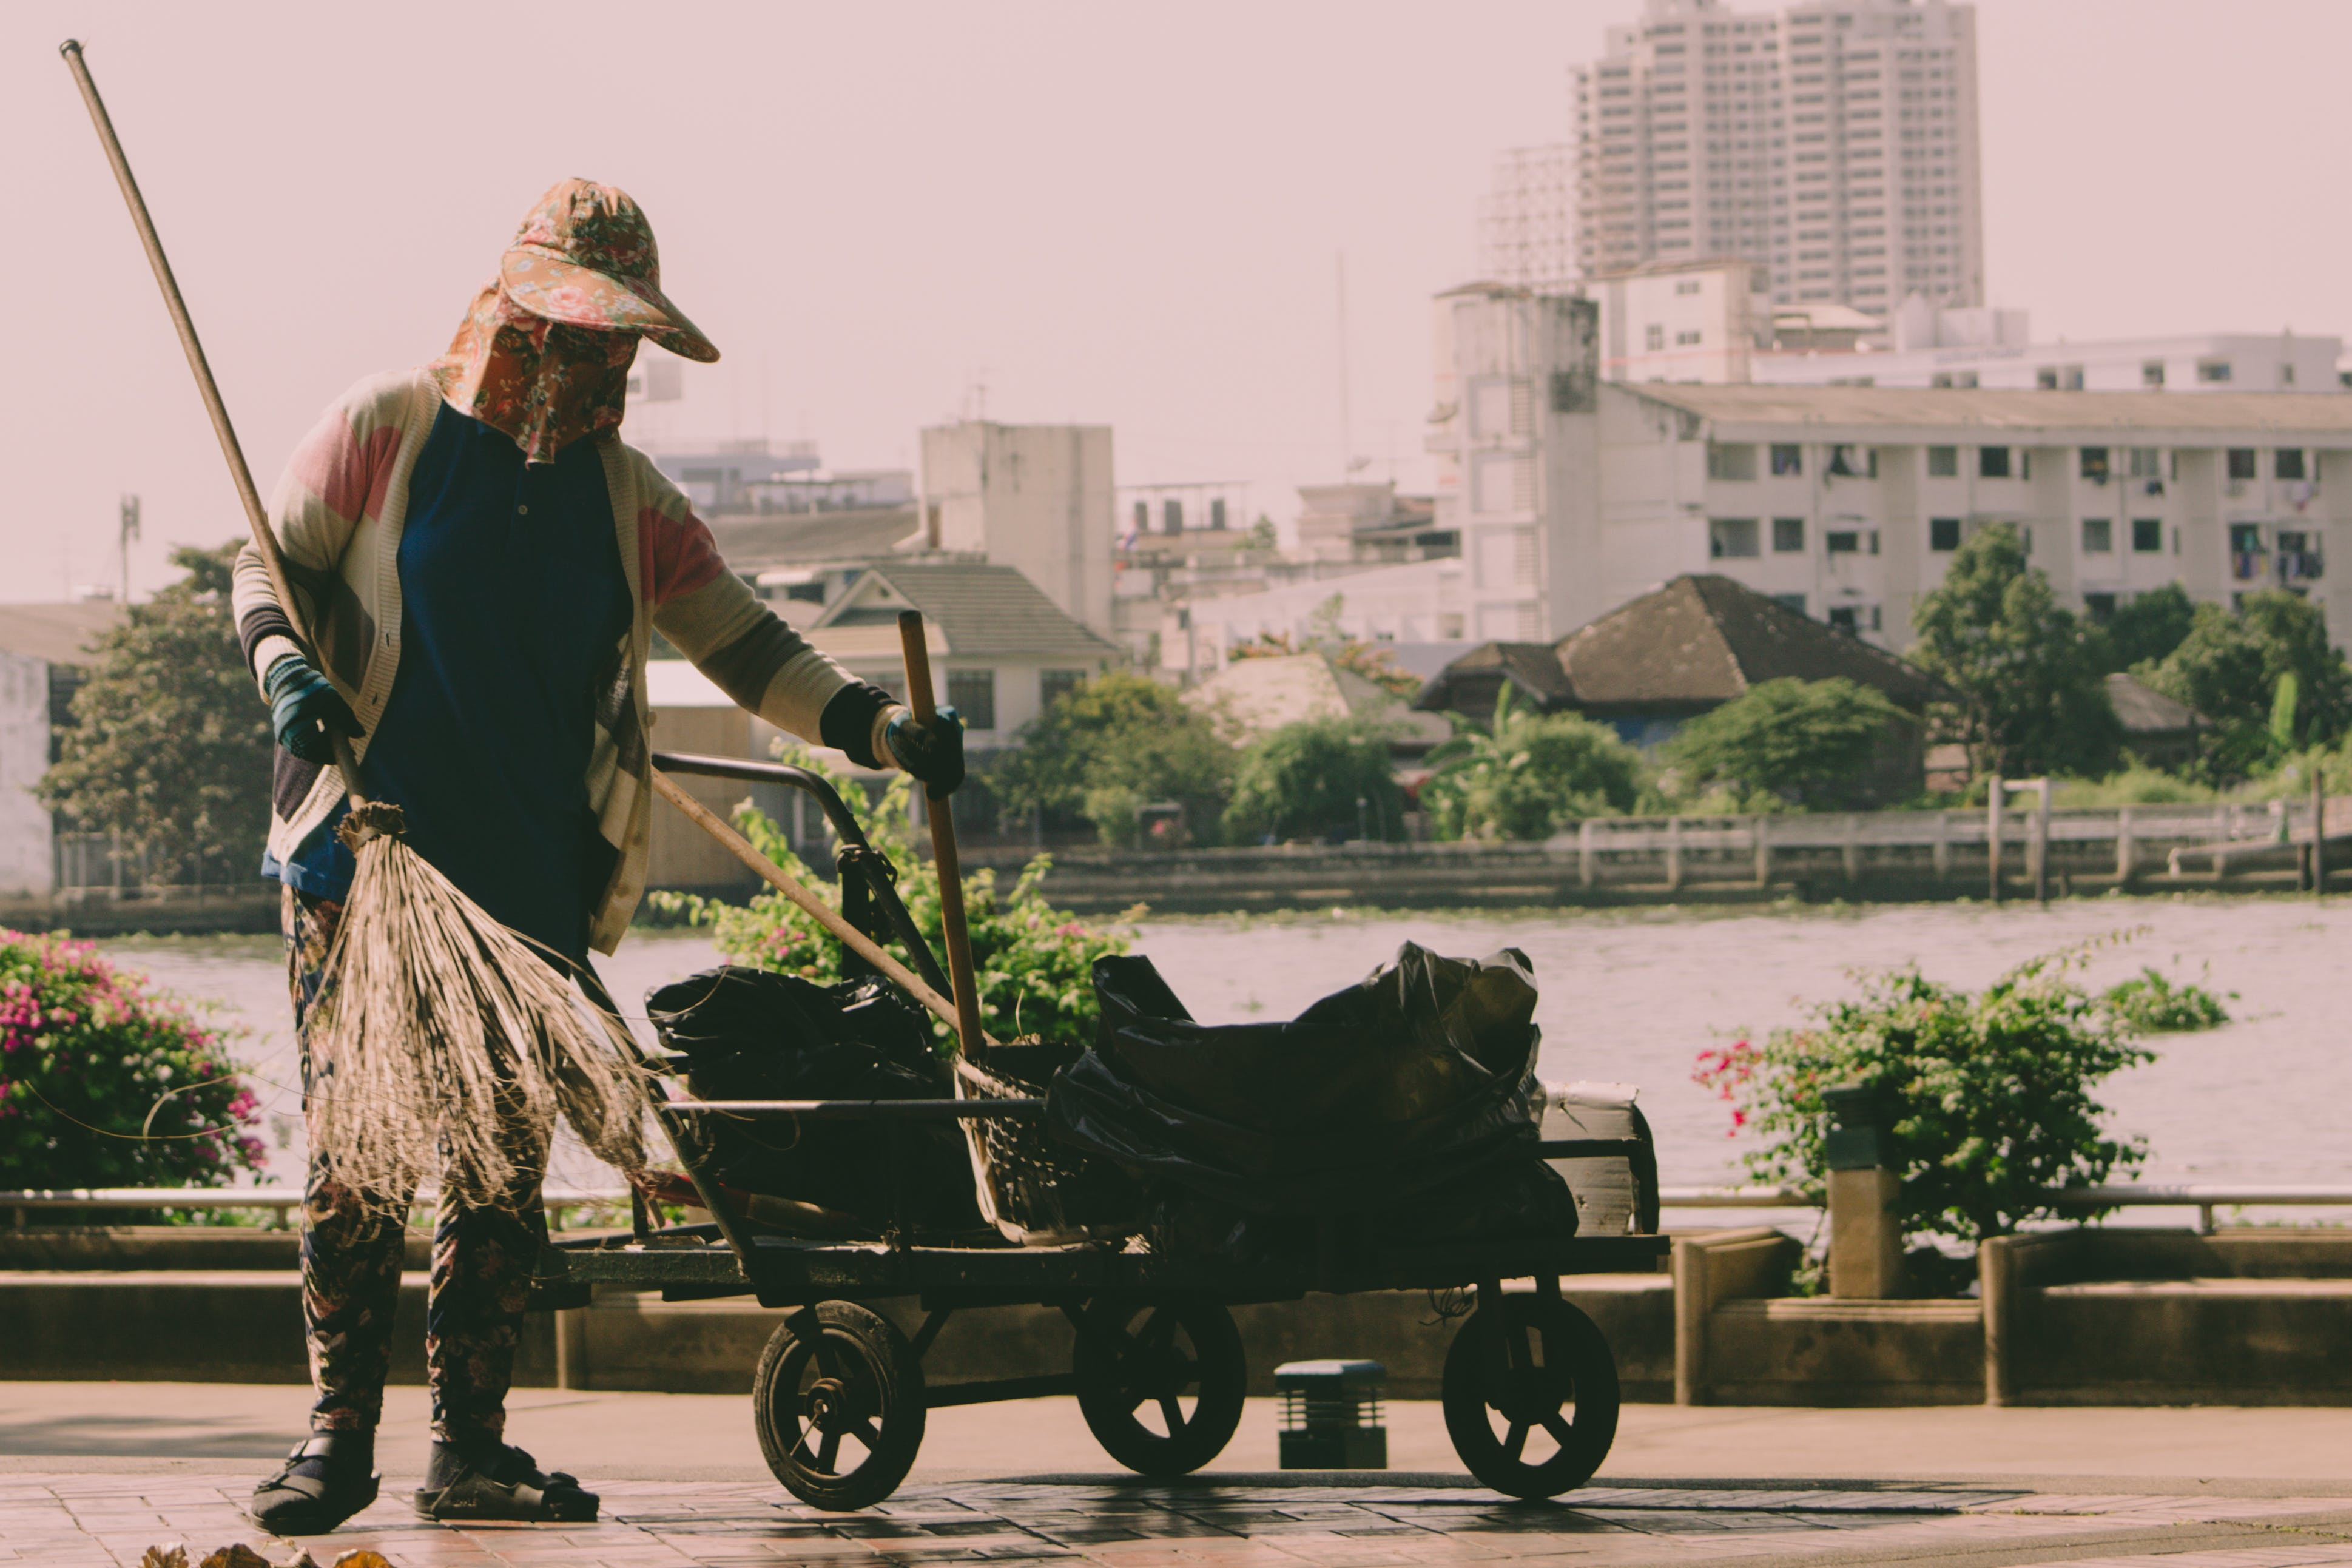 Person Holding Broom And Cart